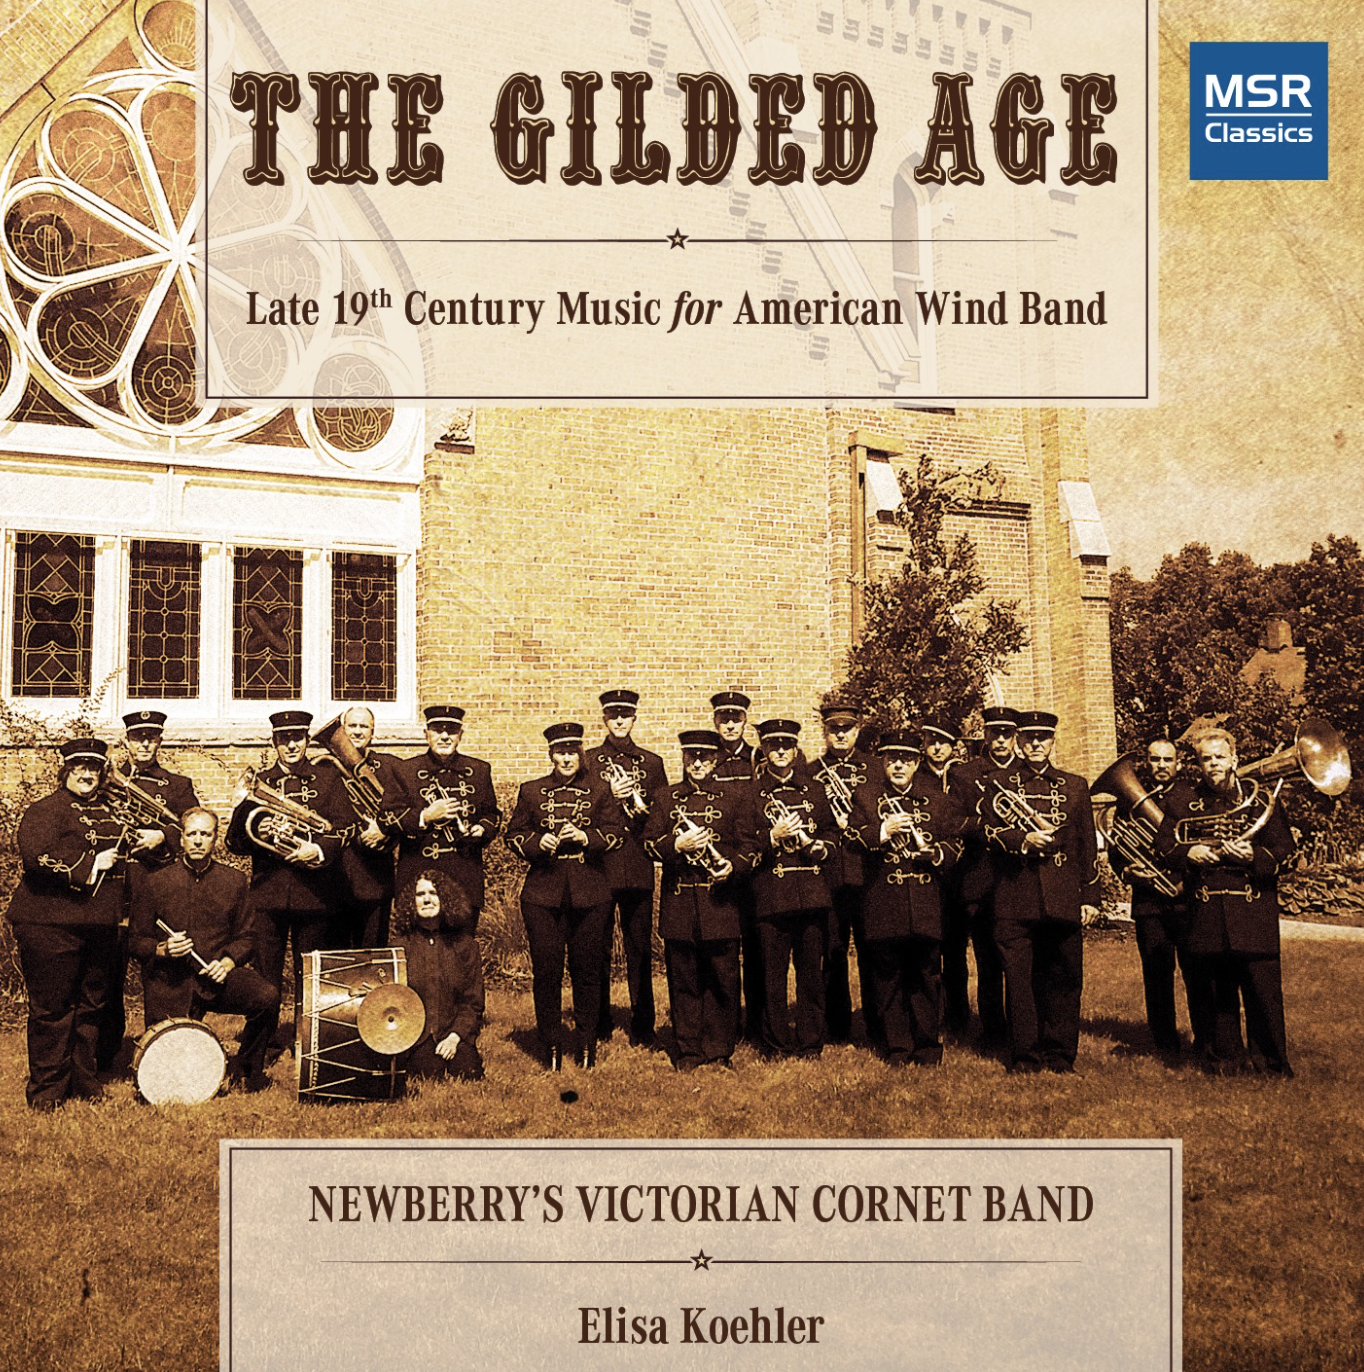 Newberry's Victorian Cornet Band